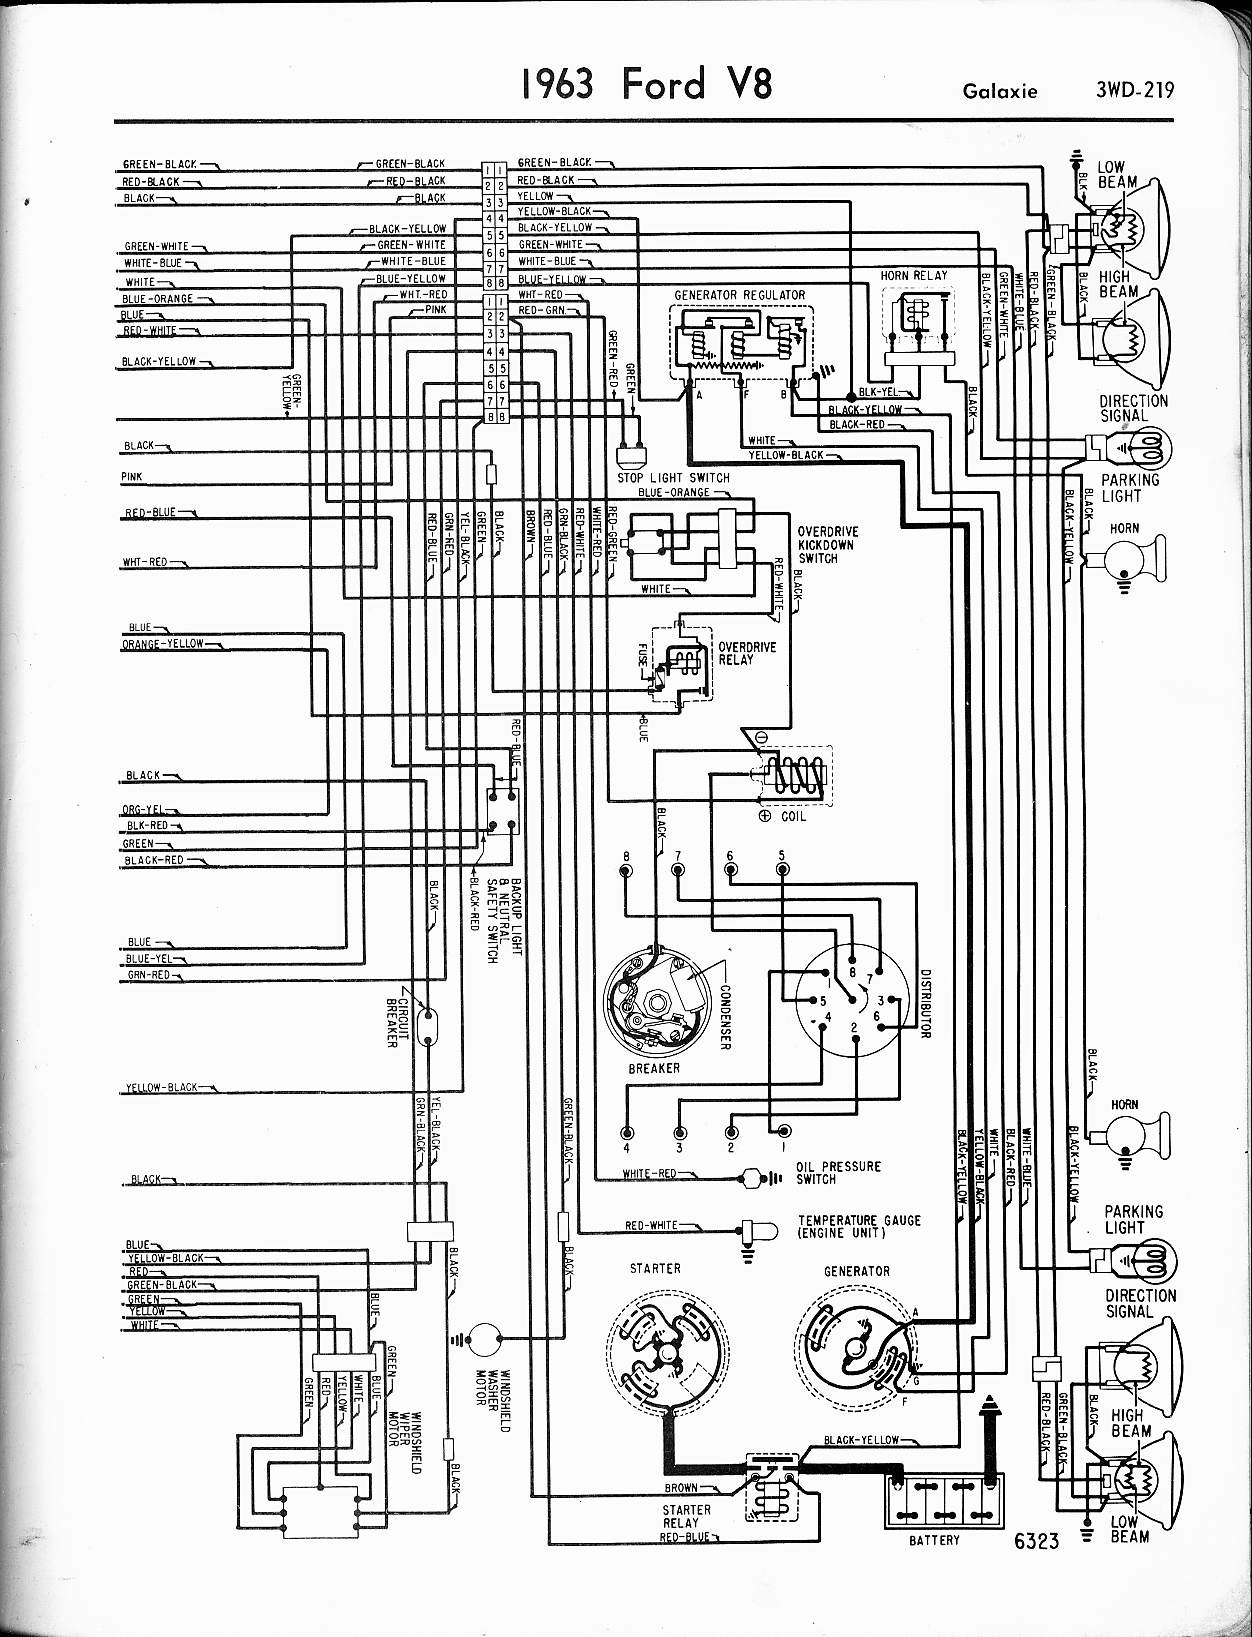 65 Galaxie Wiring Diagram on Ford Thunderbird Wiring Diagram